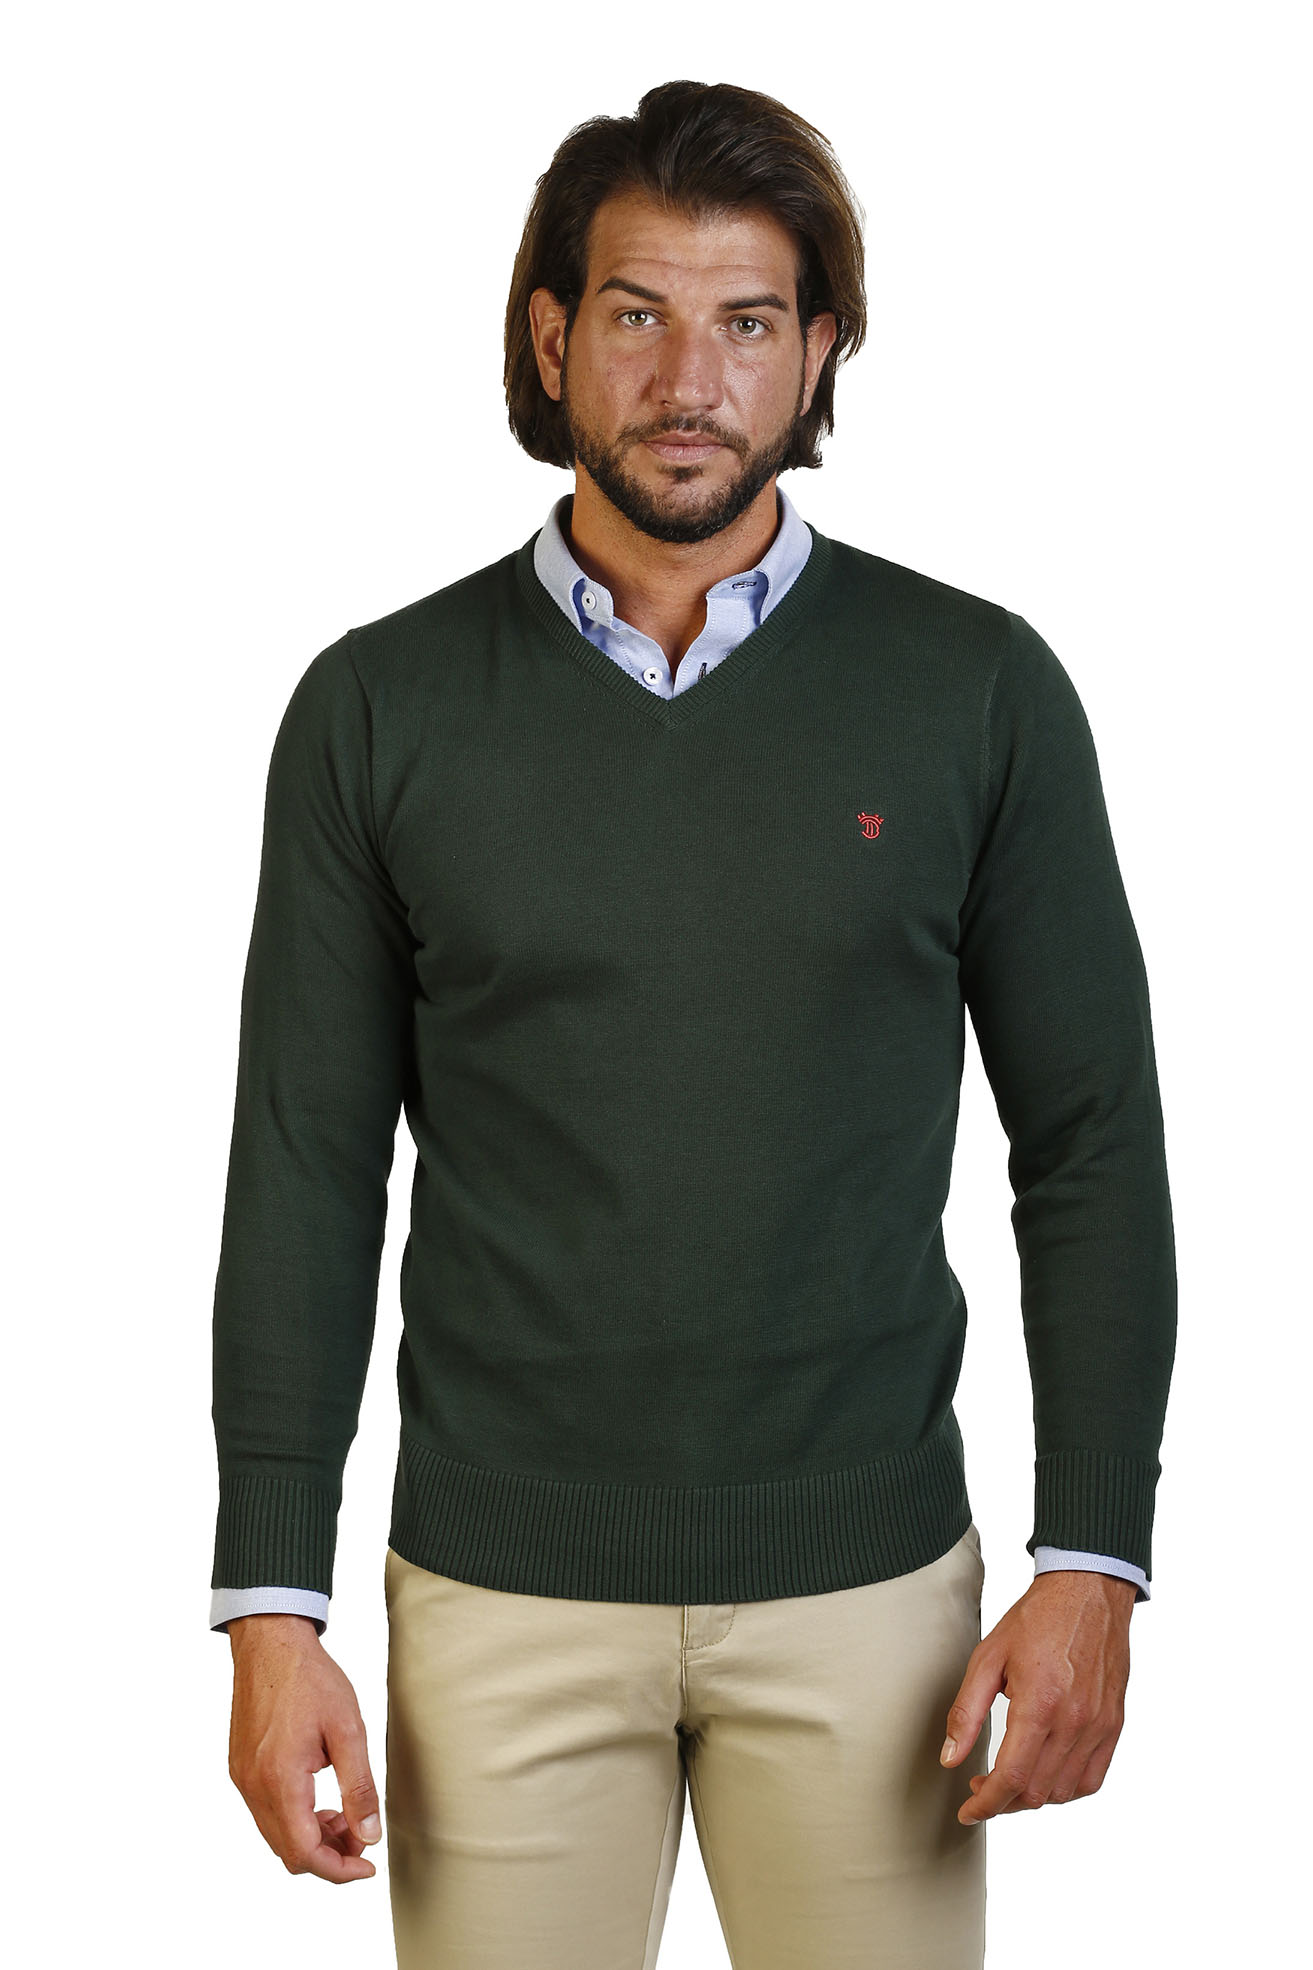 The Time Of Noggin Jersey Peak V Men Neck Collar Peak Green